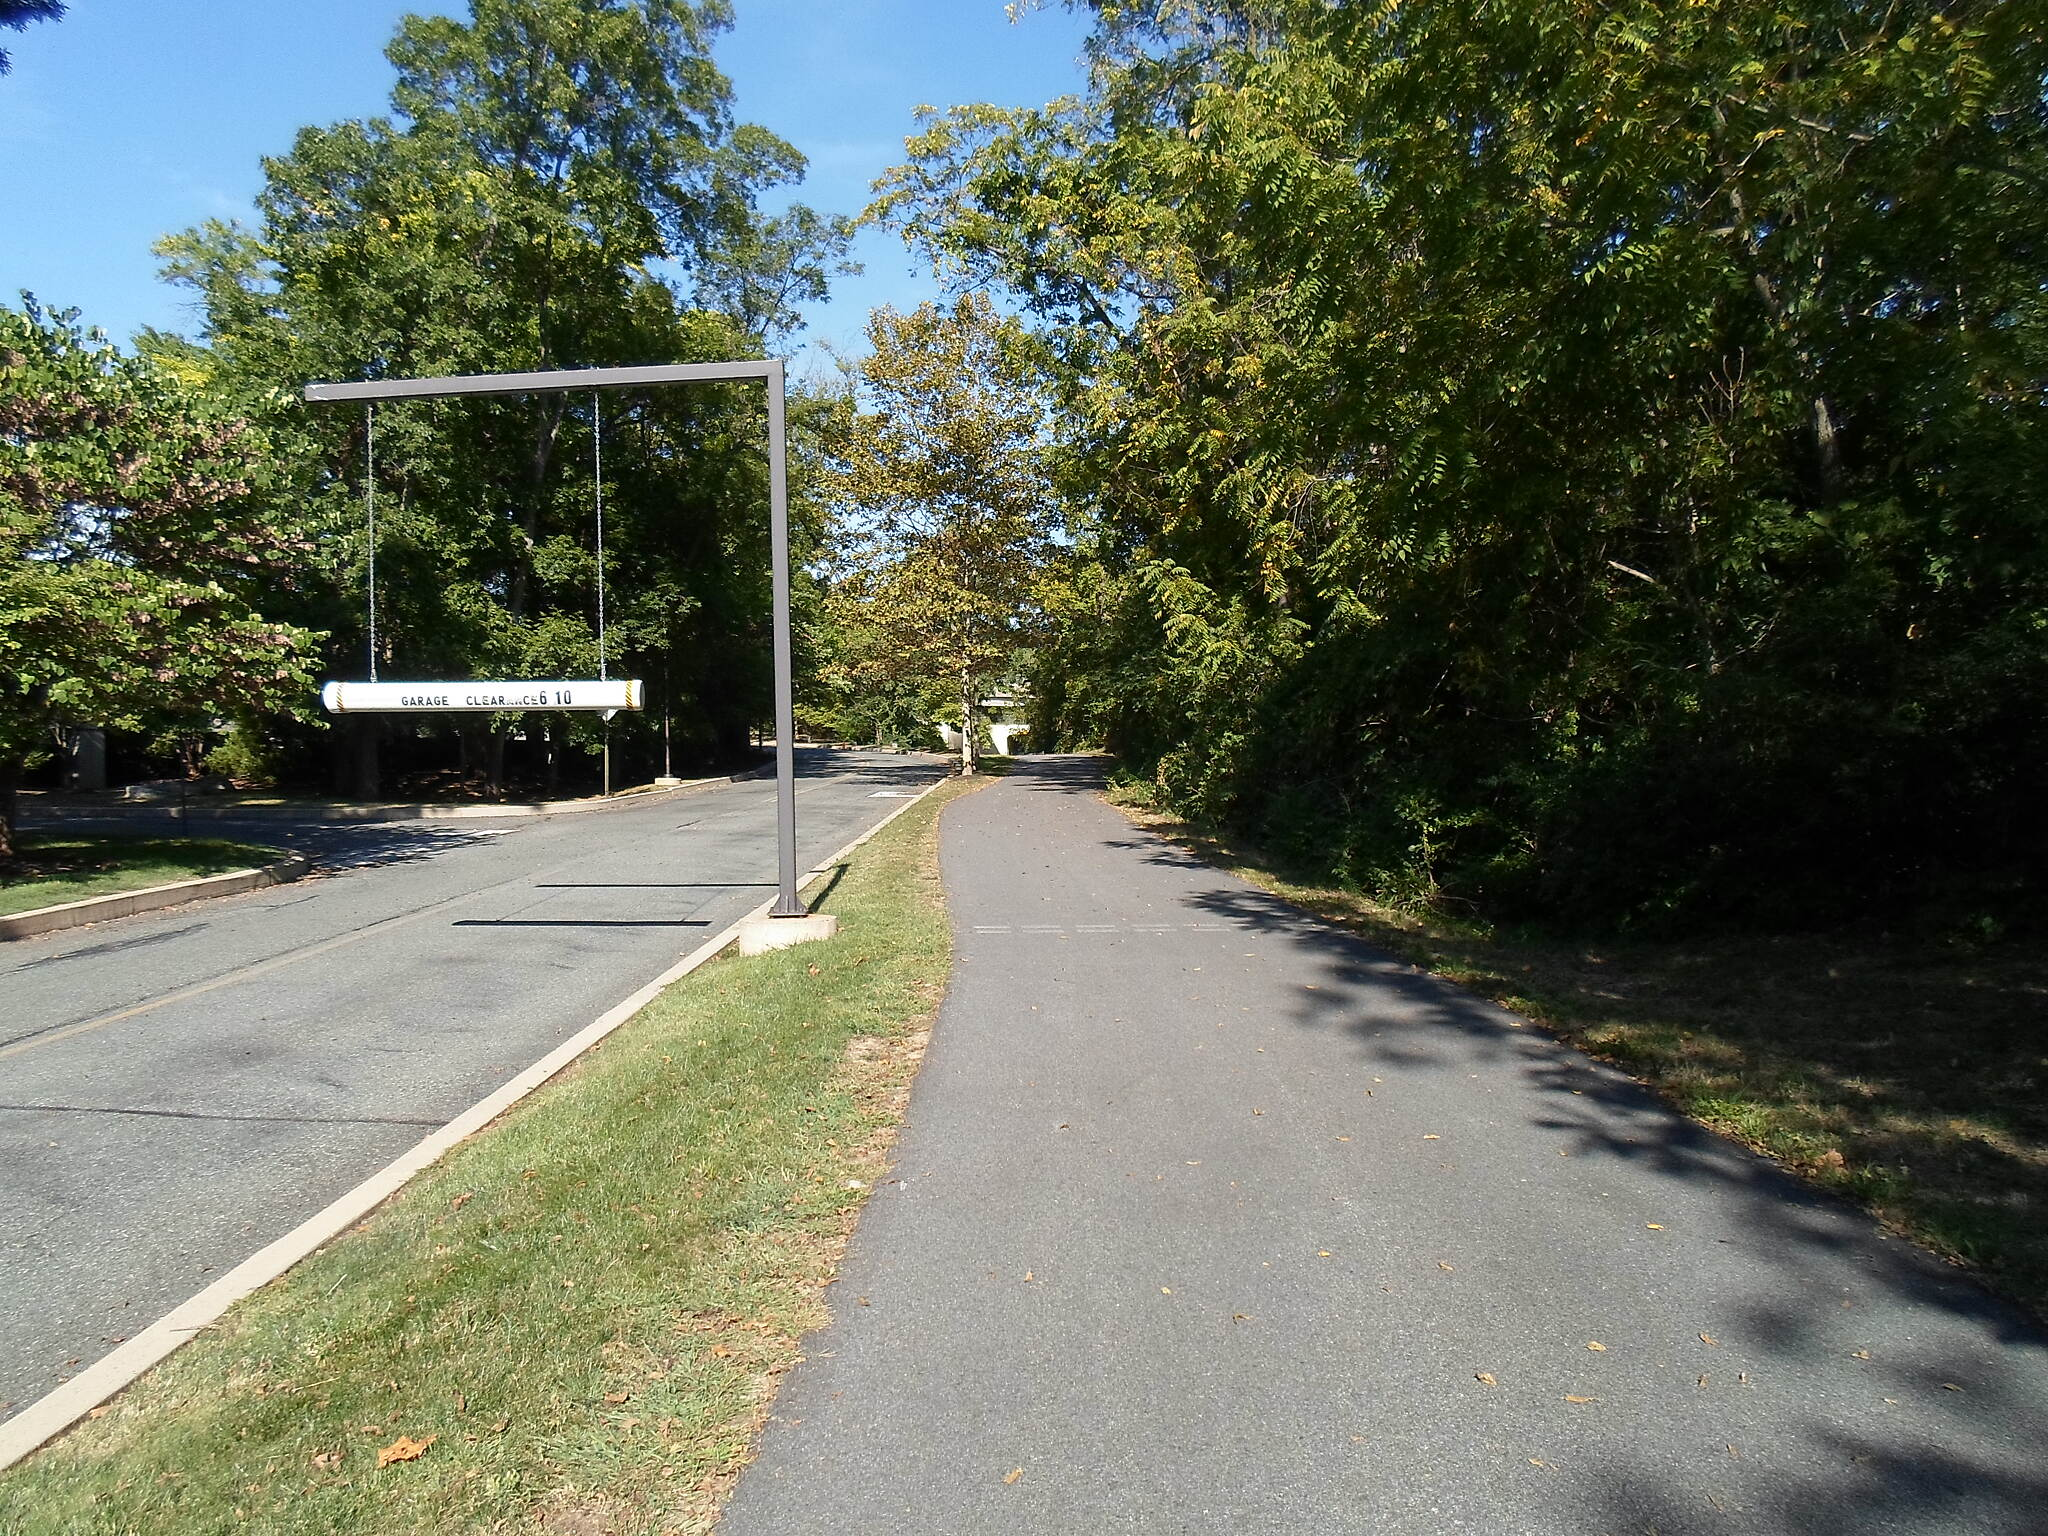 Chester Valley Trail Chester Valley Trail Paralleling an access road through an office park between Chesterbrook Blvd. and Route 252.